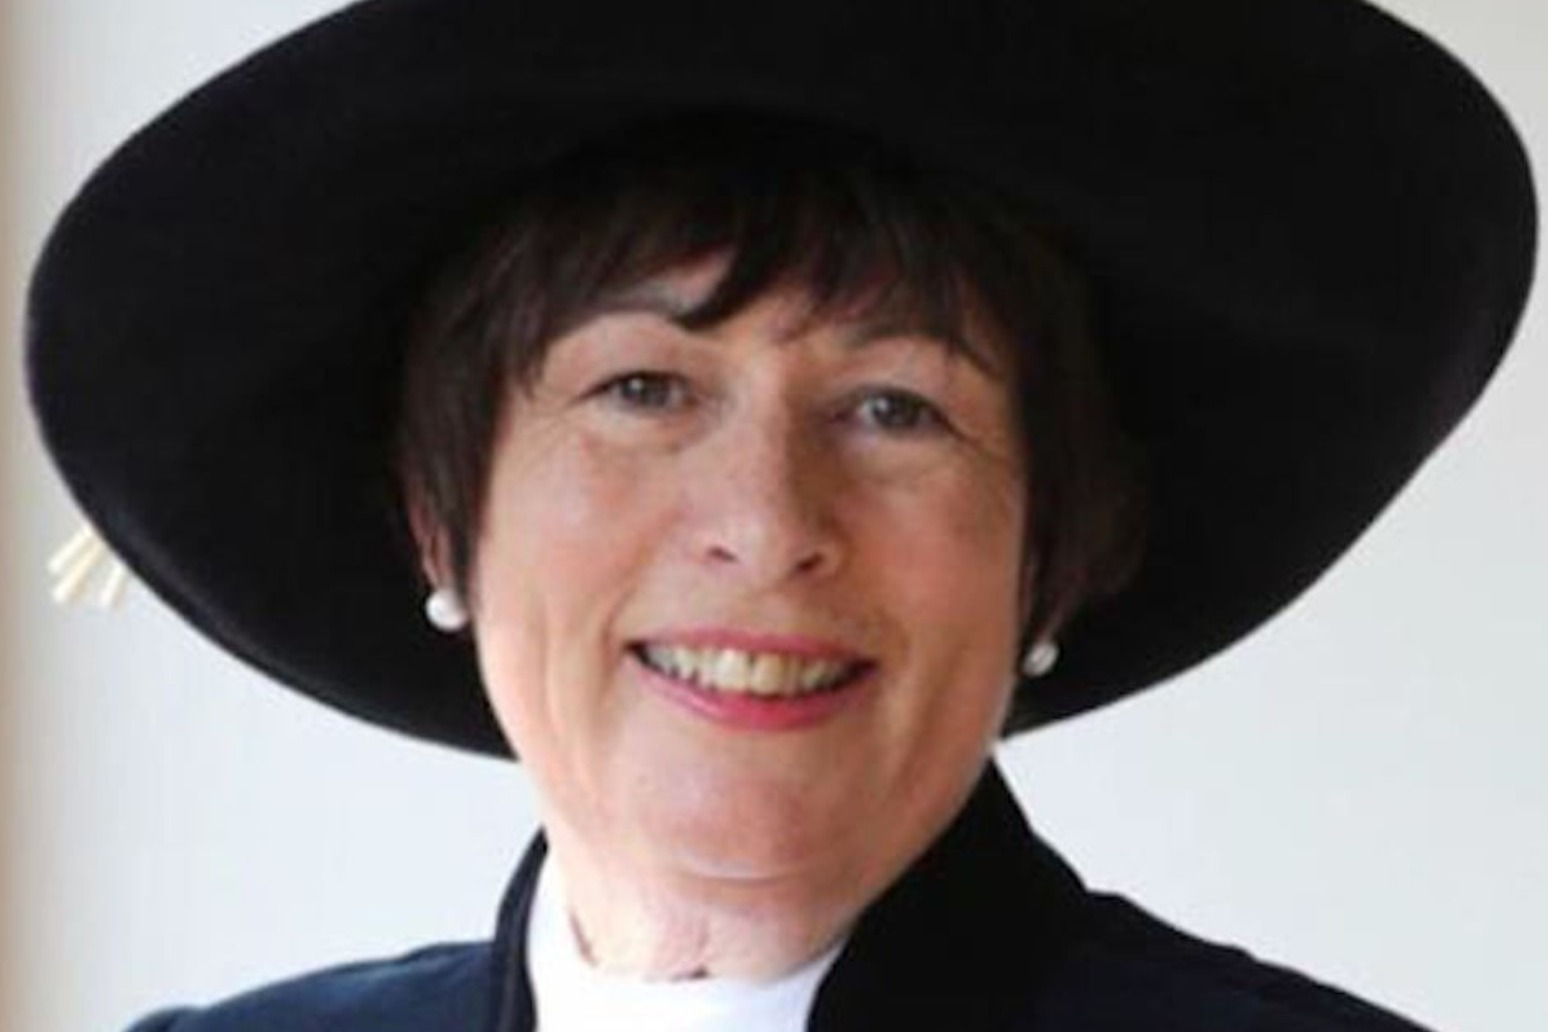 FORMER HIGH SHERIFF OF DERBYSHIRE NAMED AS WOMAN WHO DIED IN FLOODWATERS